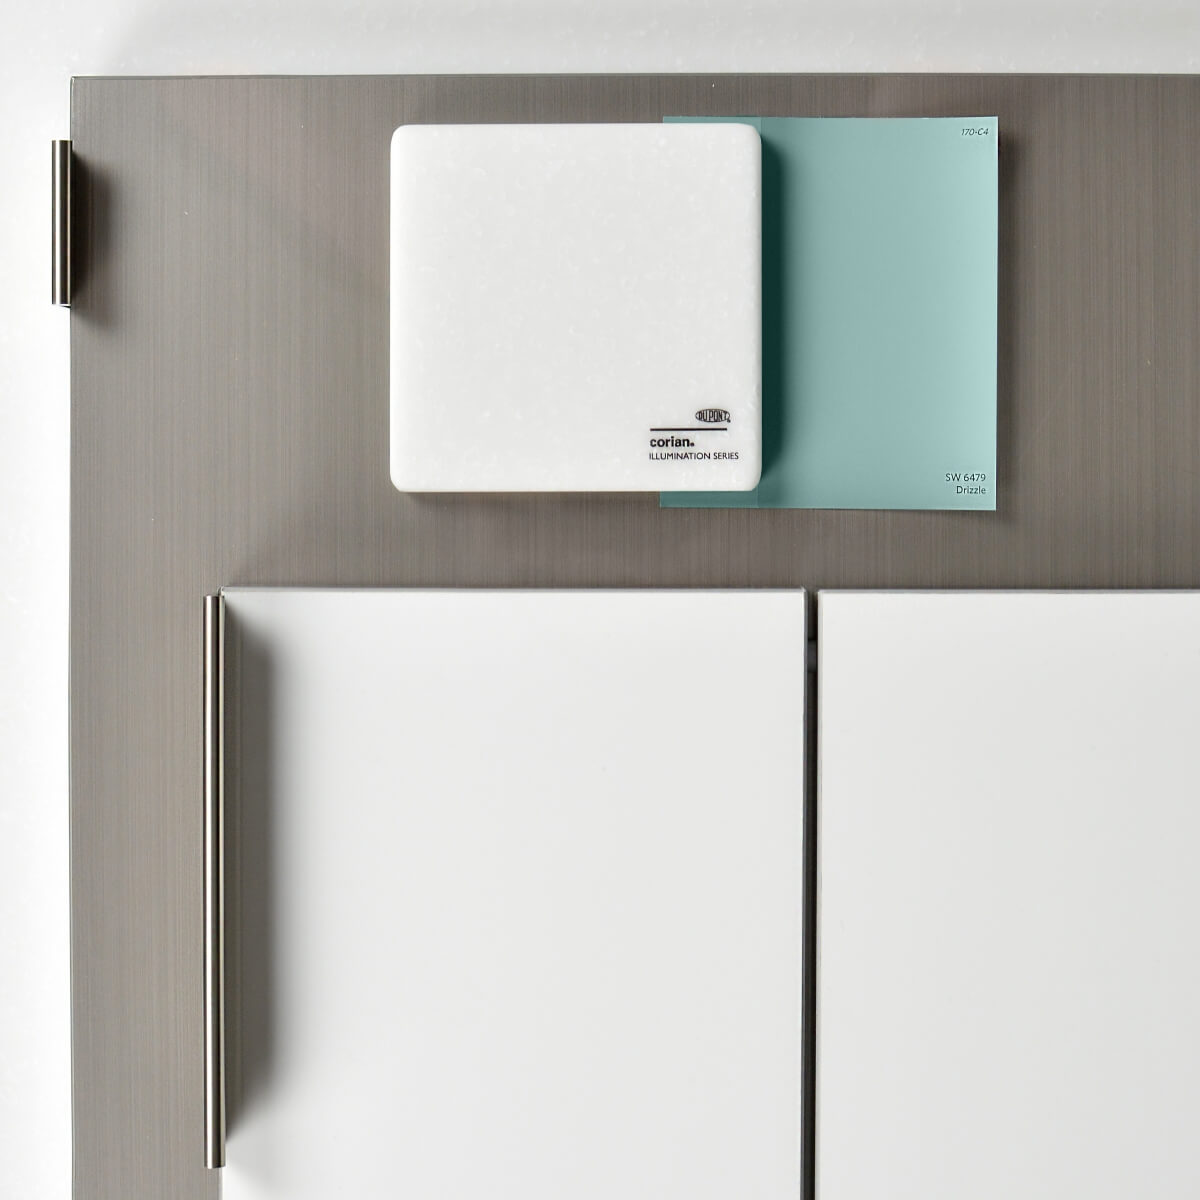 This design concept combines Dura Supreme's Ava-2T door in White Acrylic and Talia door in Wired Mercury with Corian countertop in Arctic Ice and Sherwin-Williams paint color Drizzle SW 6479.